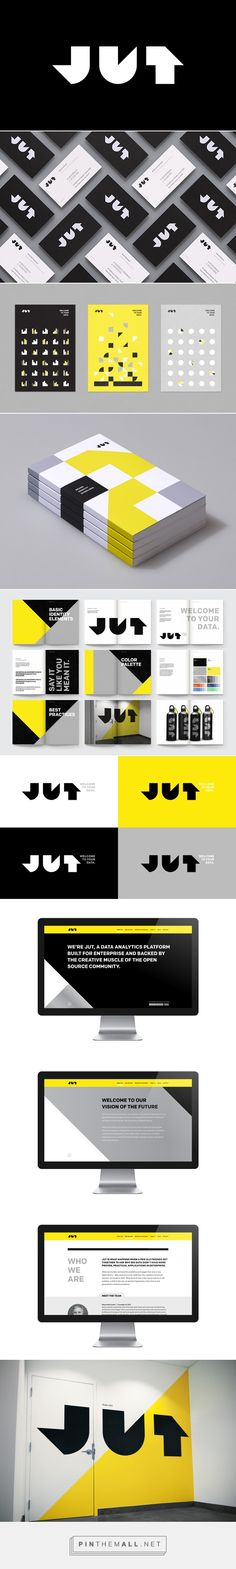 Jut – Visual Identity System by Moniker SF